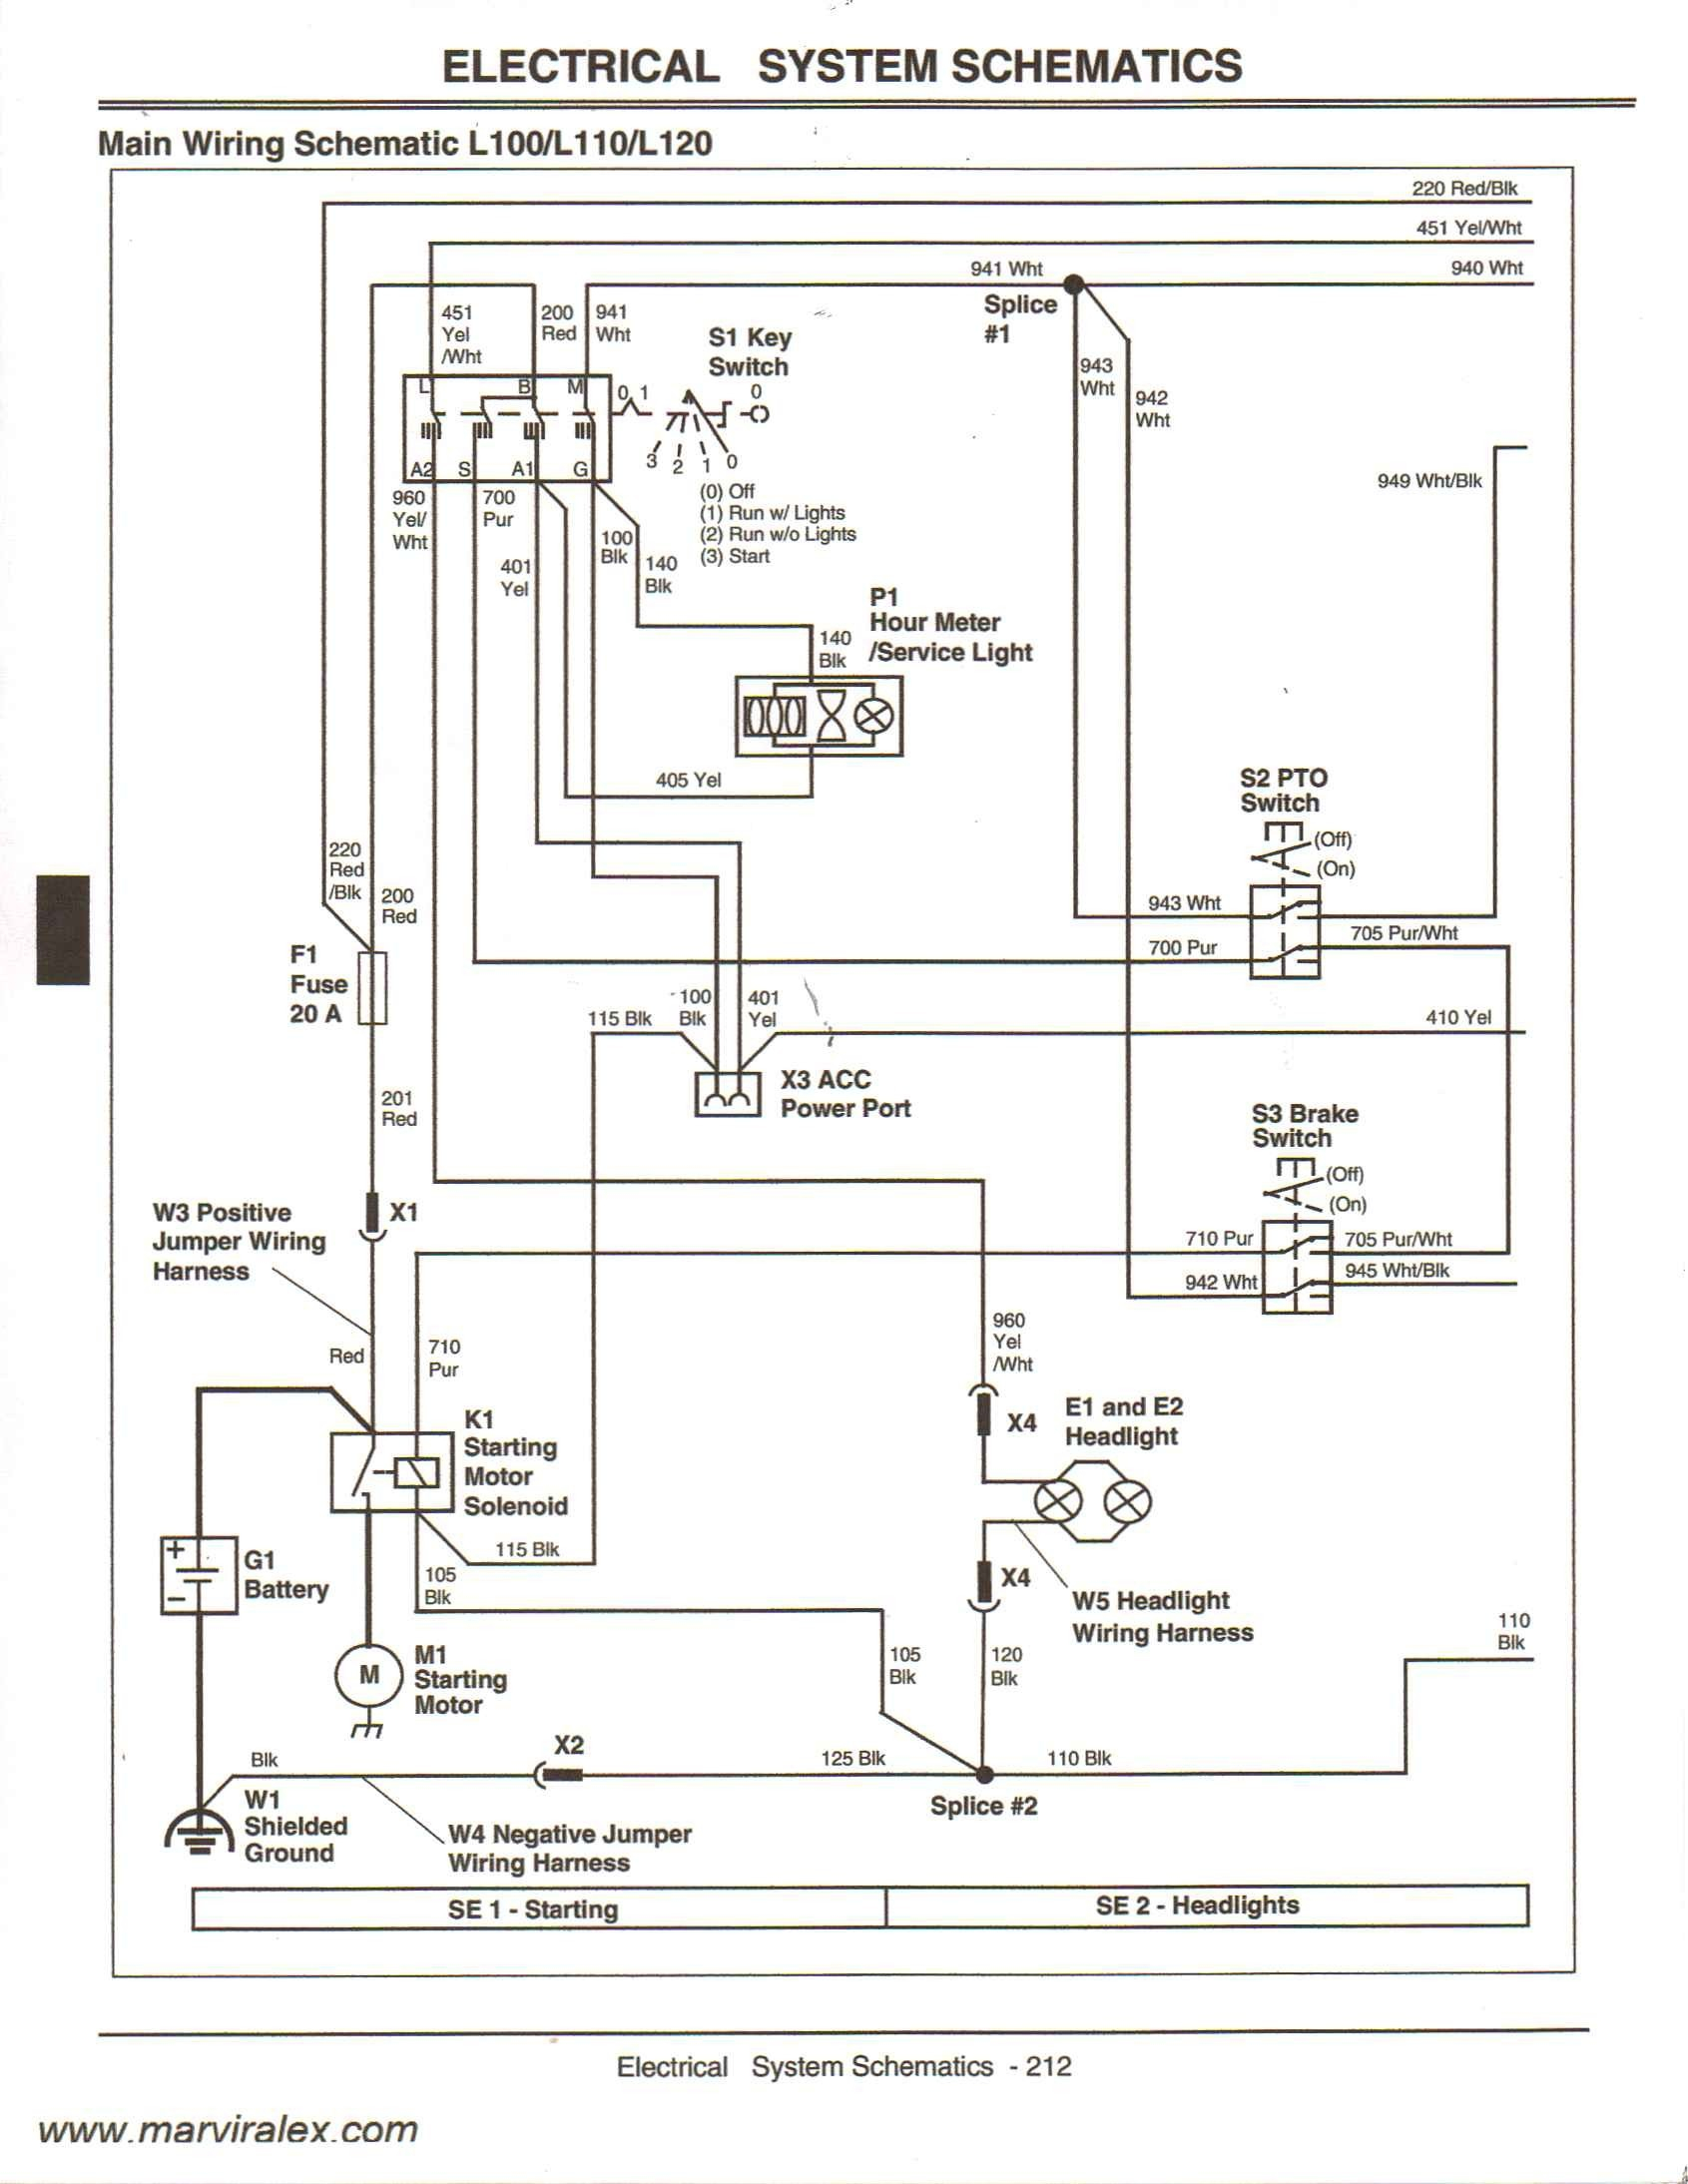 John Deere 450d Wiring Diagram | Wiring Diagram on john deere m wiring-diagram, john deere 180 wiring-diagram, john deere 455 wiring-diagram, john deere 155c wiring-diagram, john deere la120 wiring diagram, john deere x360 wiring diagram, john deere d170 wiring diagram, john deere ignition wiring diagram, john deere 145 wiring-diagram, john deere la140 wiring diagram, john deere lx279 wiring diagram, john deere x324 wiring diagram, john deere z830a wiring diagram, john deere z255 wiring diagram, john deere electrical diagrams, john deere mower wiring diagram, john deere x720 wiring diagram, john deere d140 wiring diagram, john deere la115 wiring diagram, john deere z445 wiring diagram,